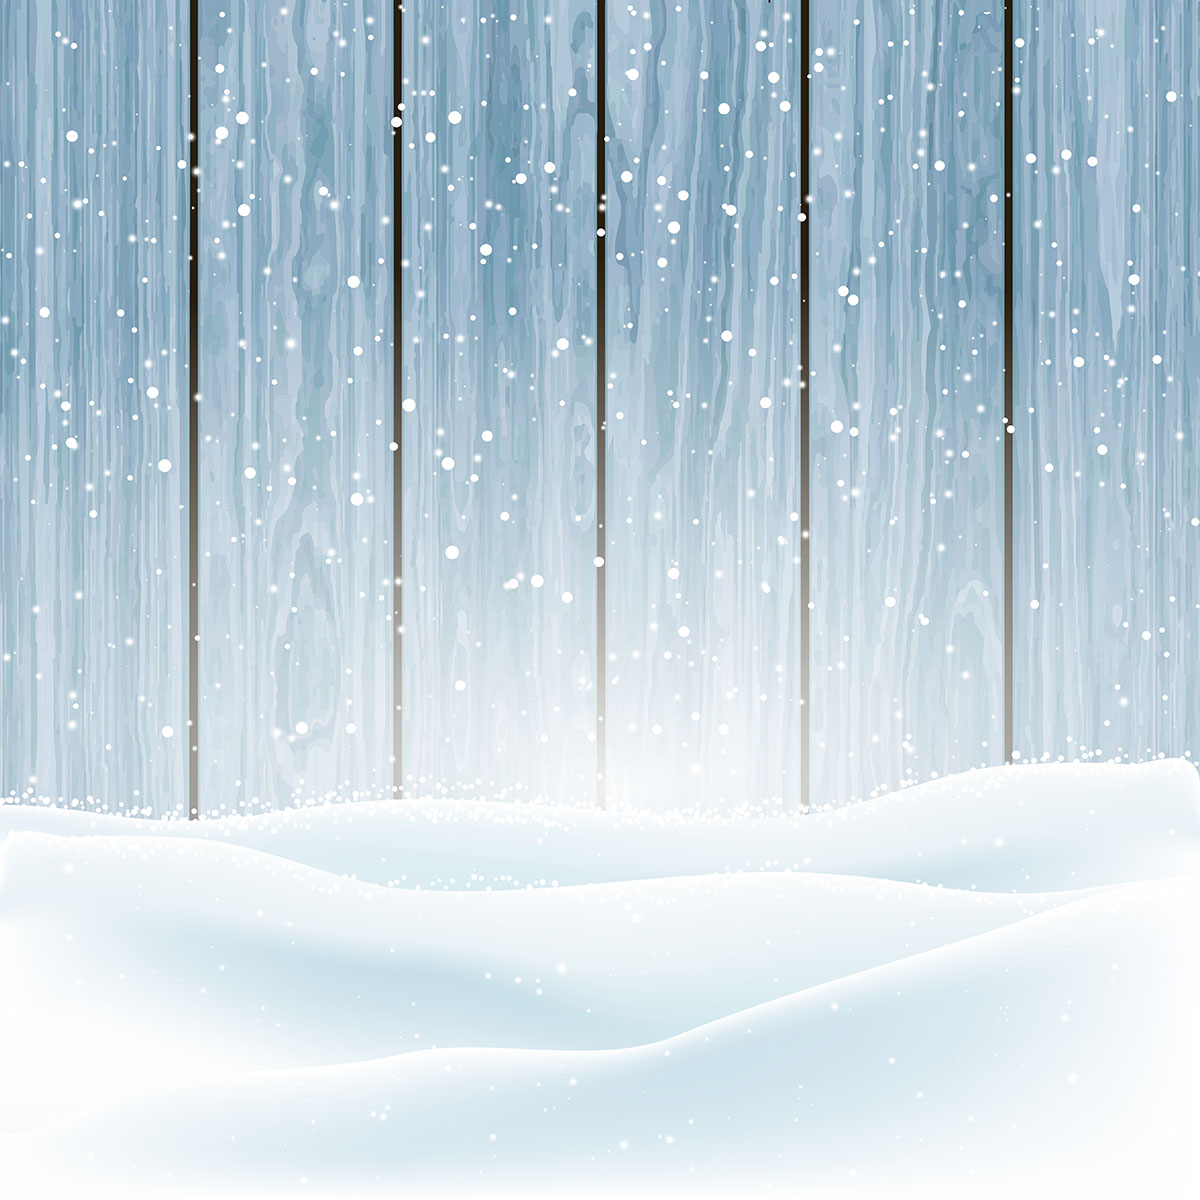 Snow Background Free Vector Art 57747 Free Downloads